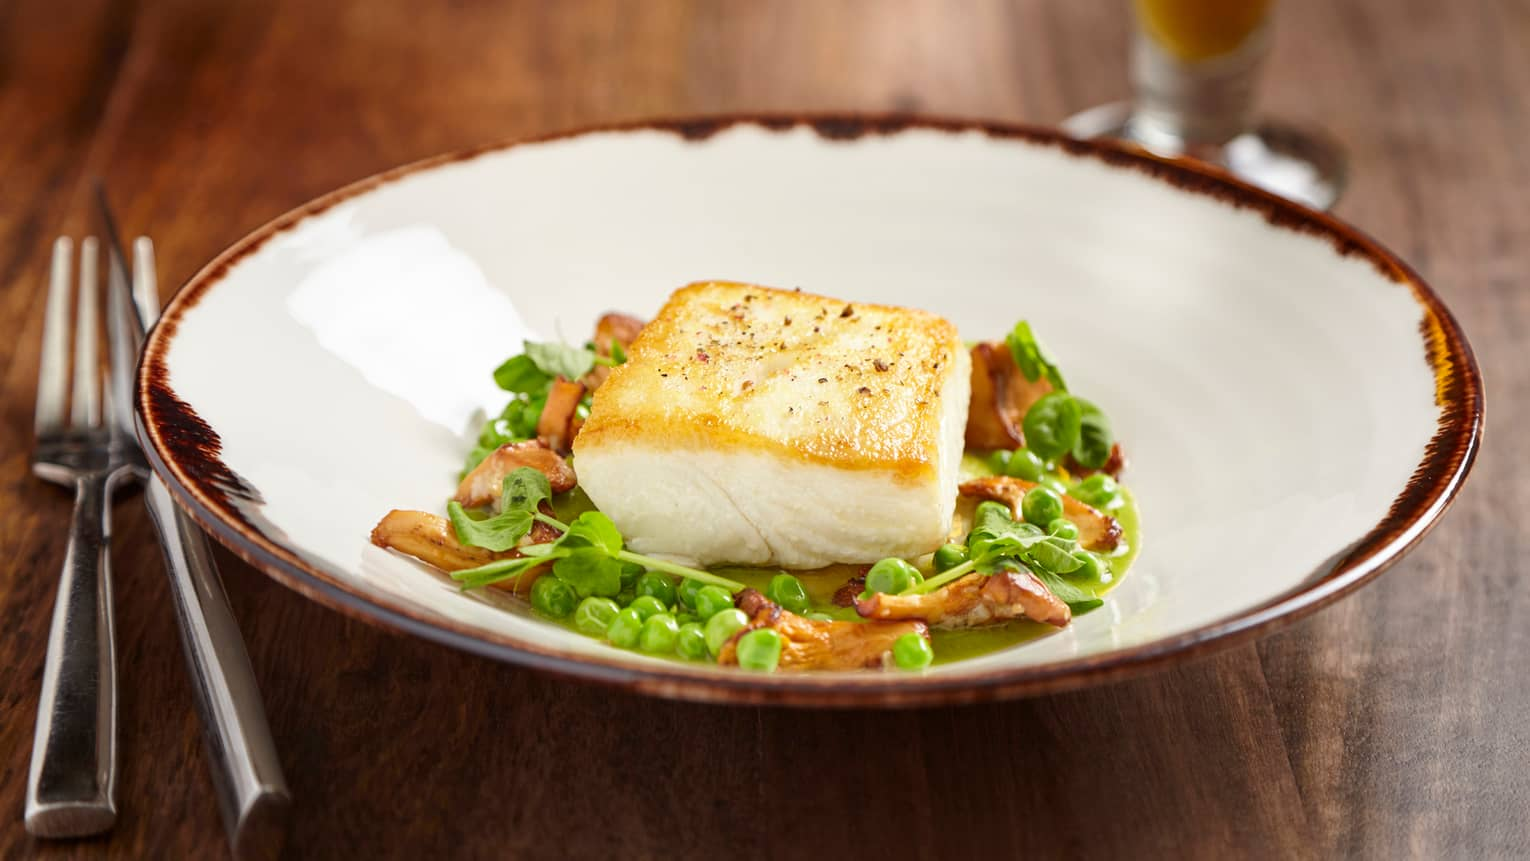 Pan-roasted Alaskan halibut fillet on fresh green peas, herbs and mushrooms in bowl